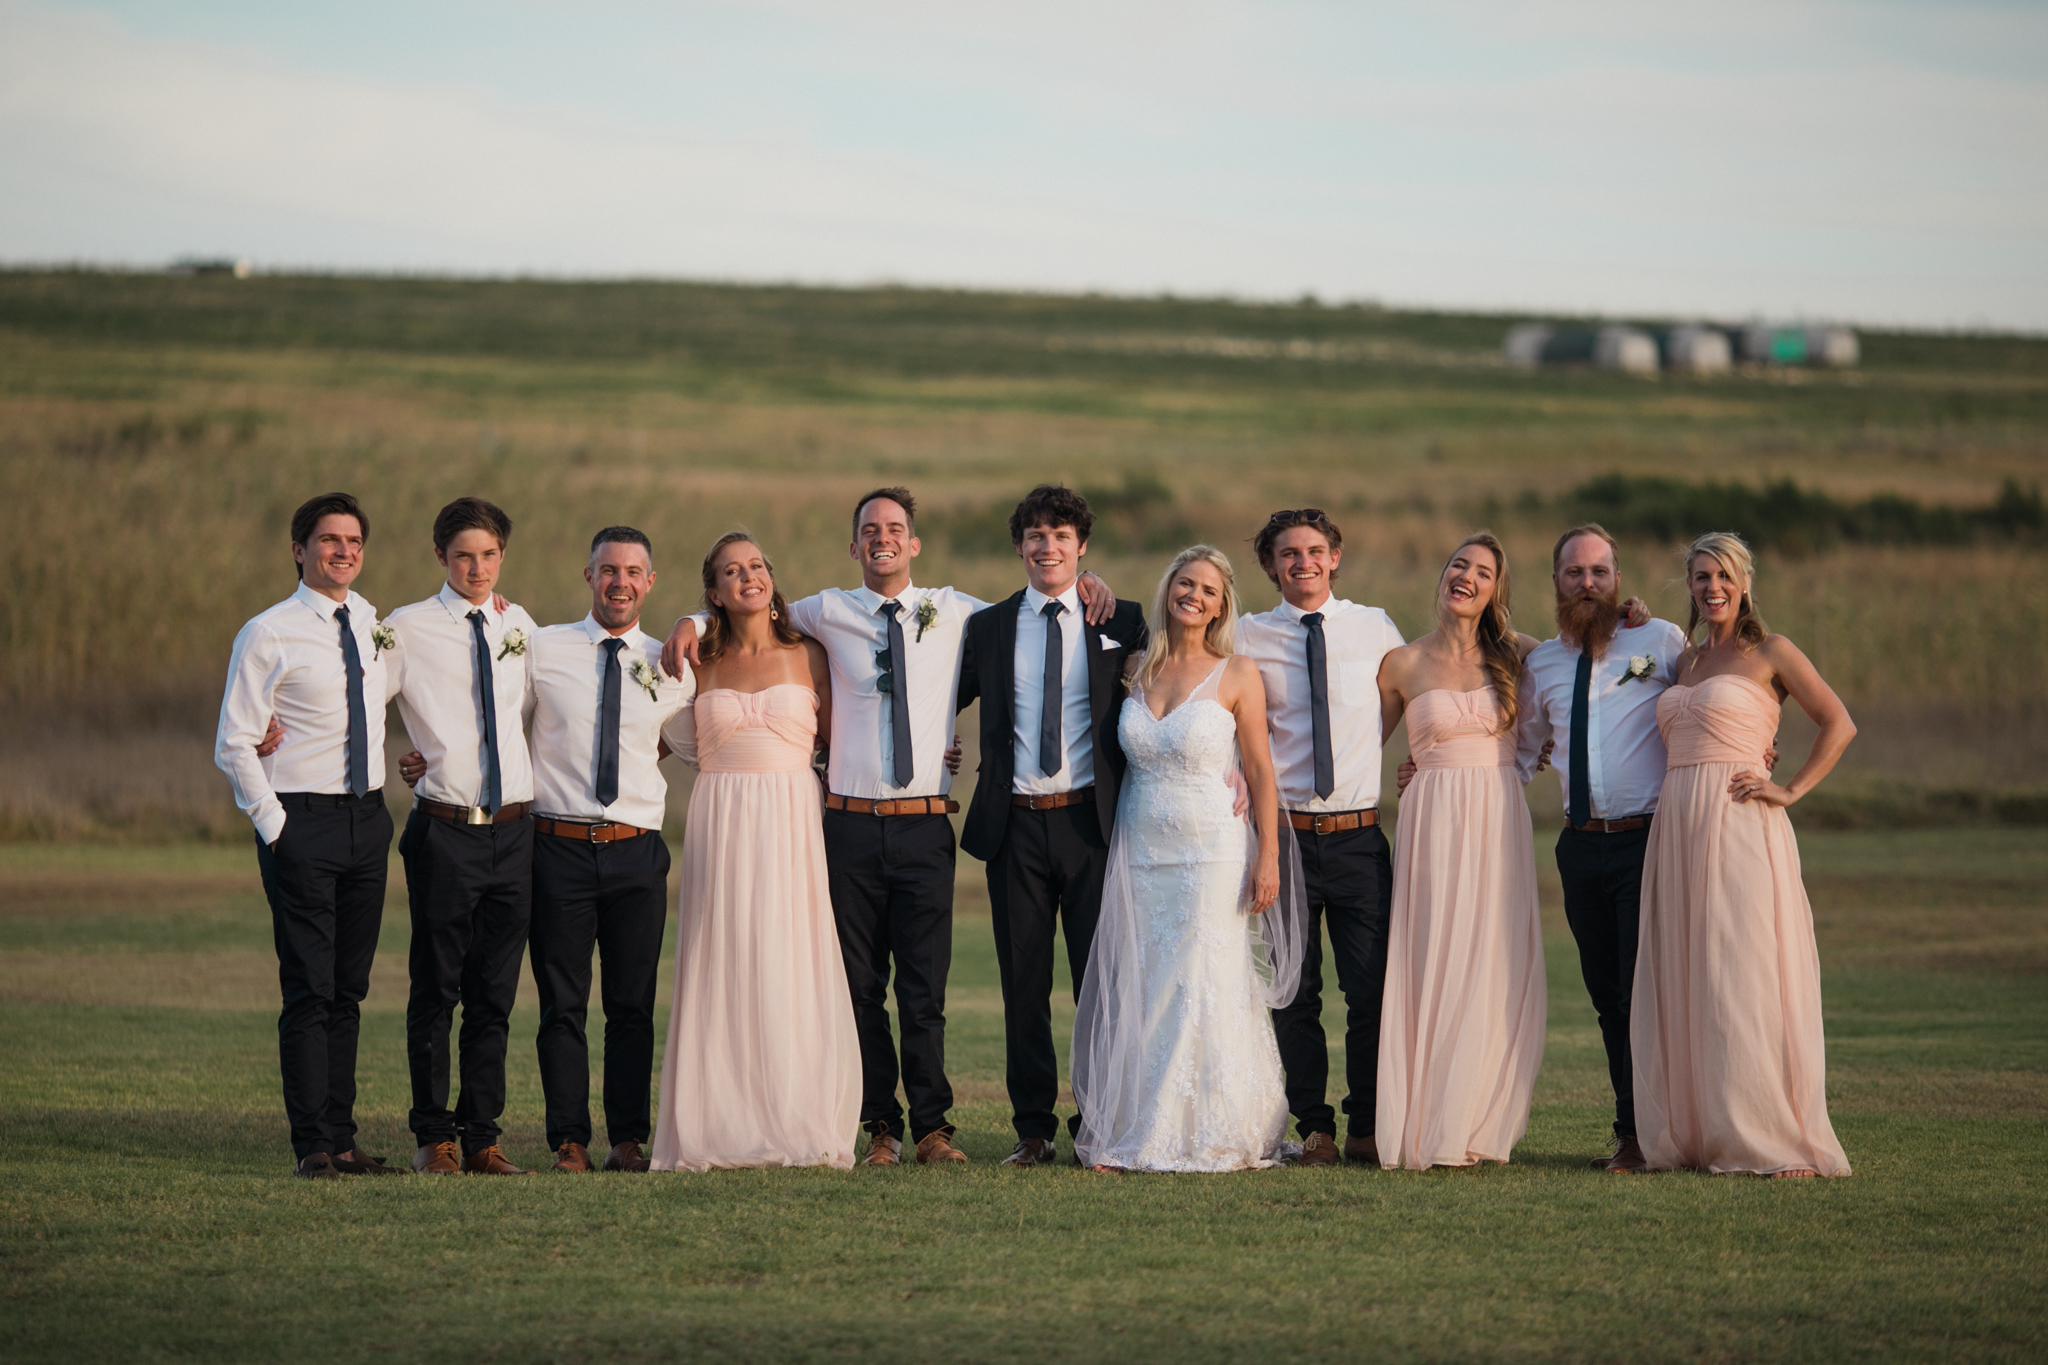 heisvisual-wedding-photographers-spier-wine-farm-stellenbosch204.jpg